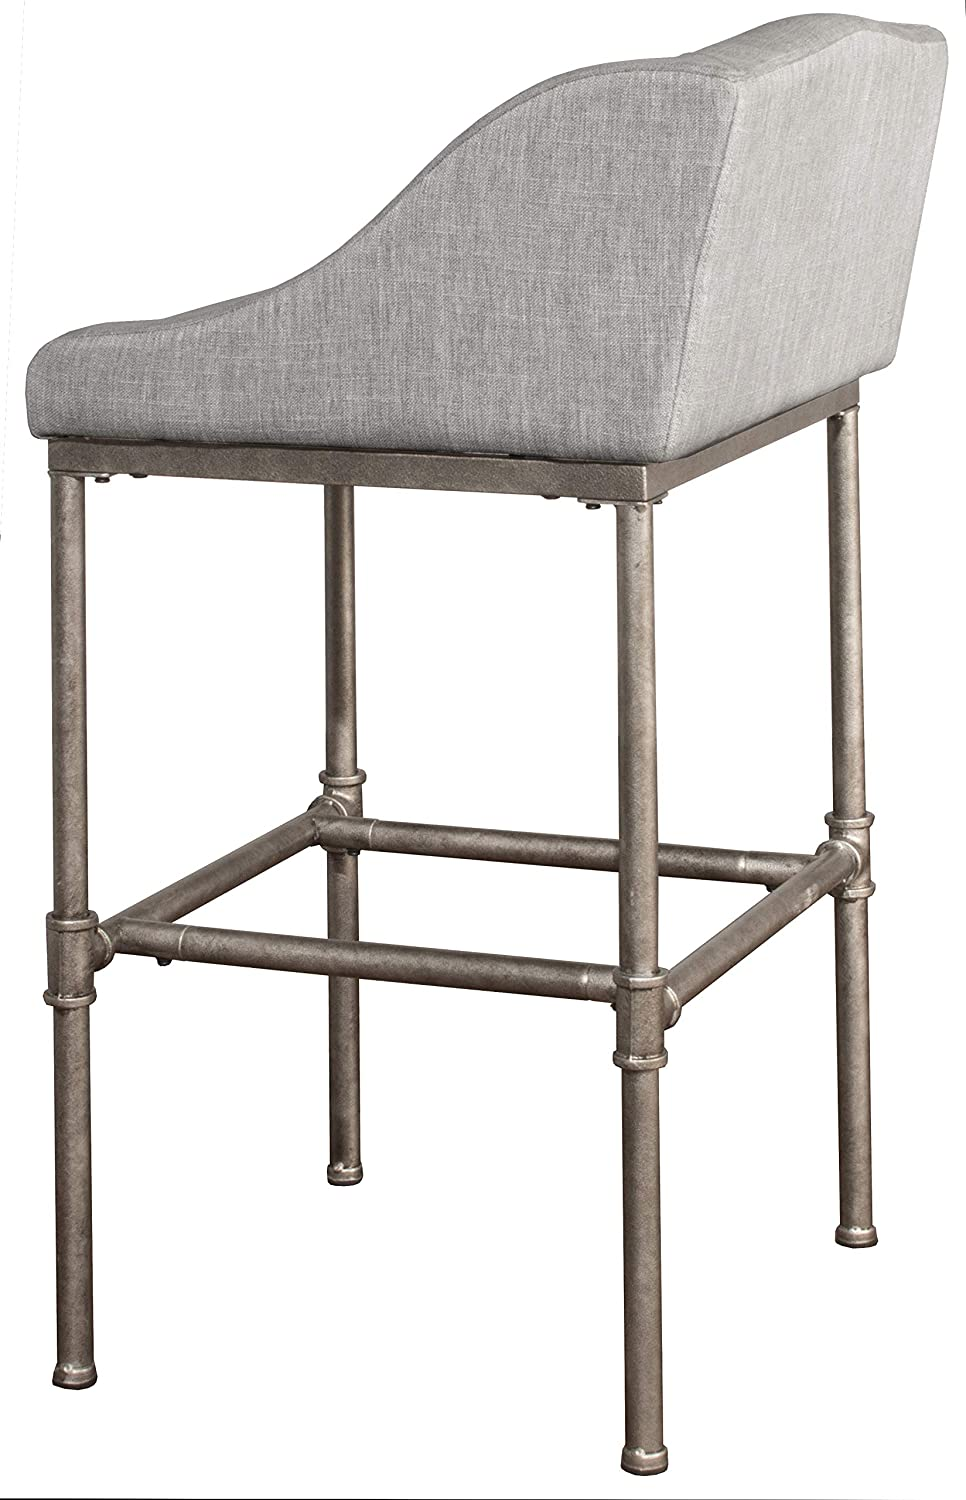 Hillsdale Furniutre Dillon Counter Stool, Textured Silver